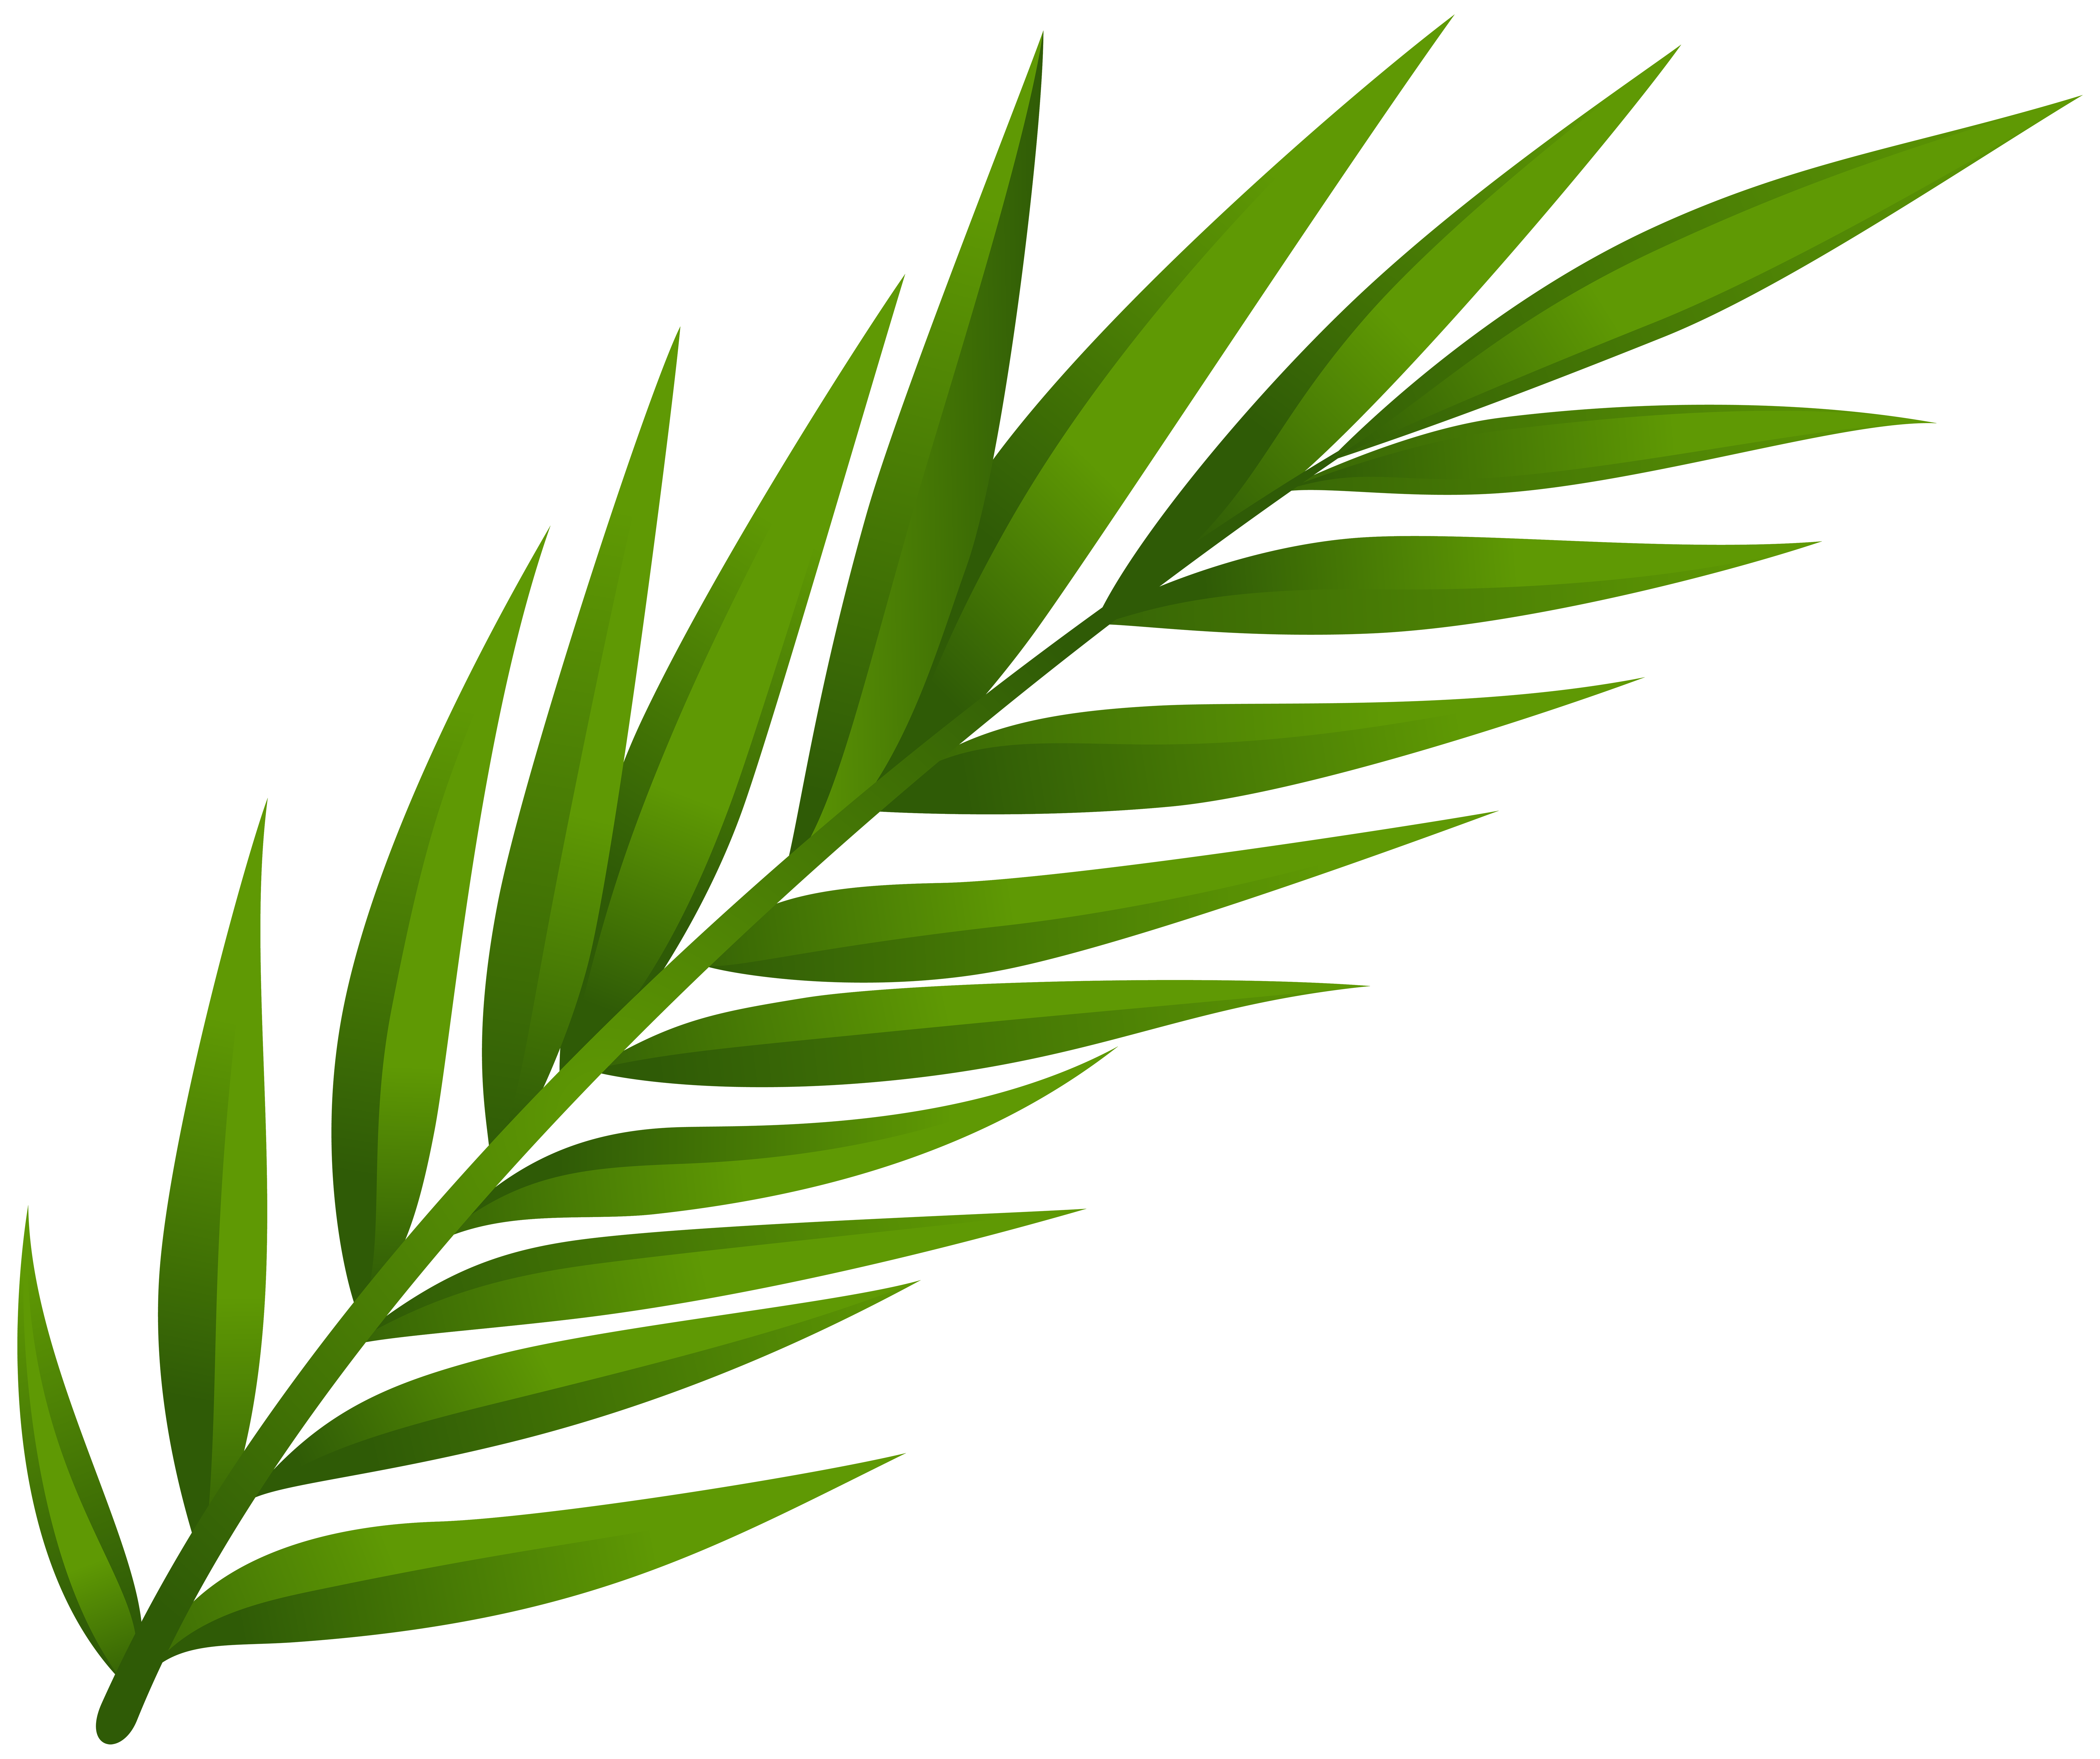 Herbal Leaf Cliparts | Free download on ClipArtMag